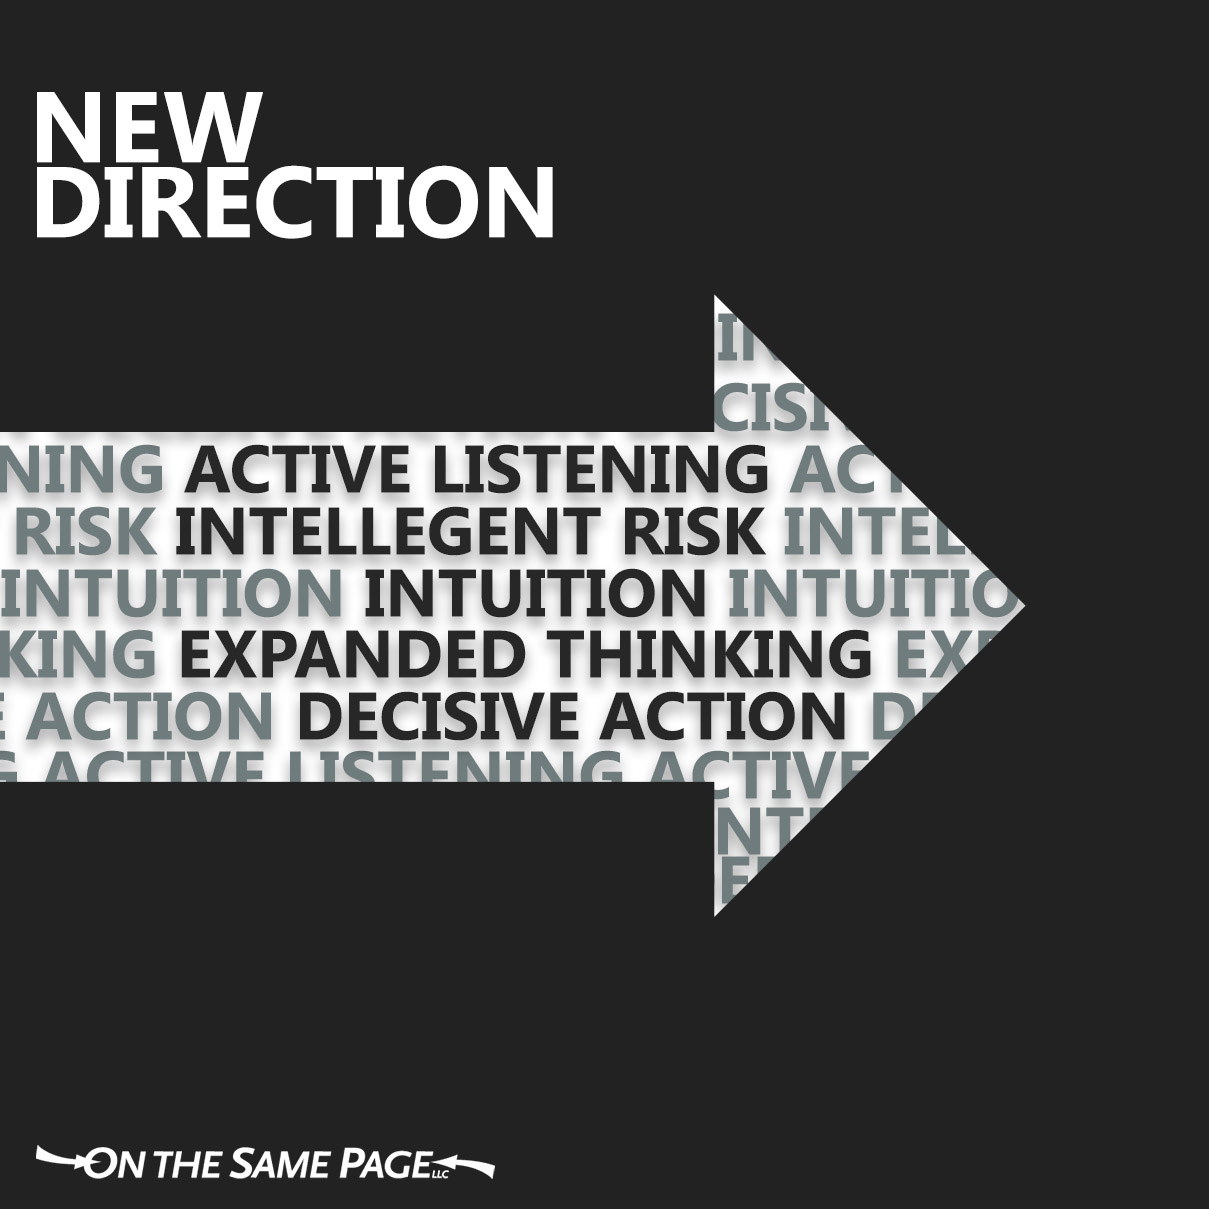 Change Communication - New Direction